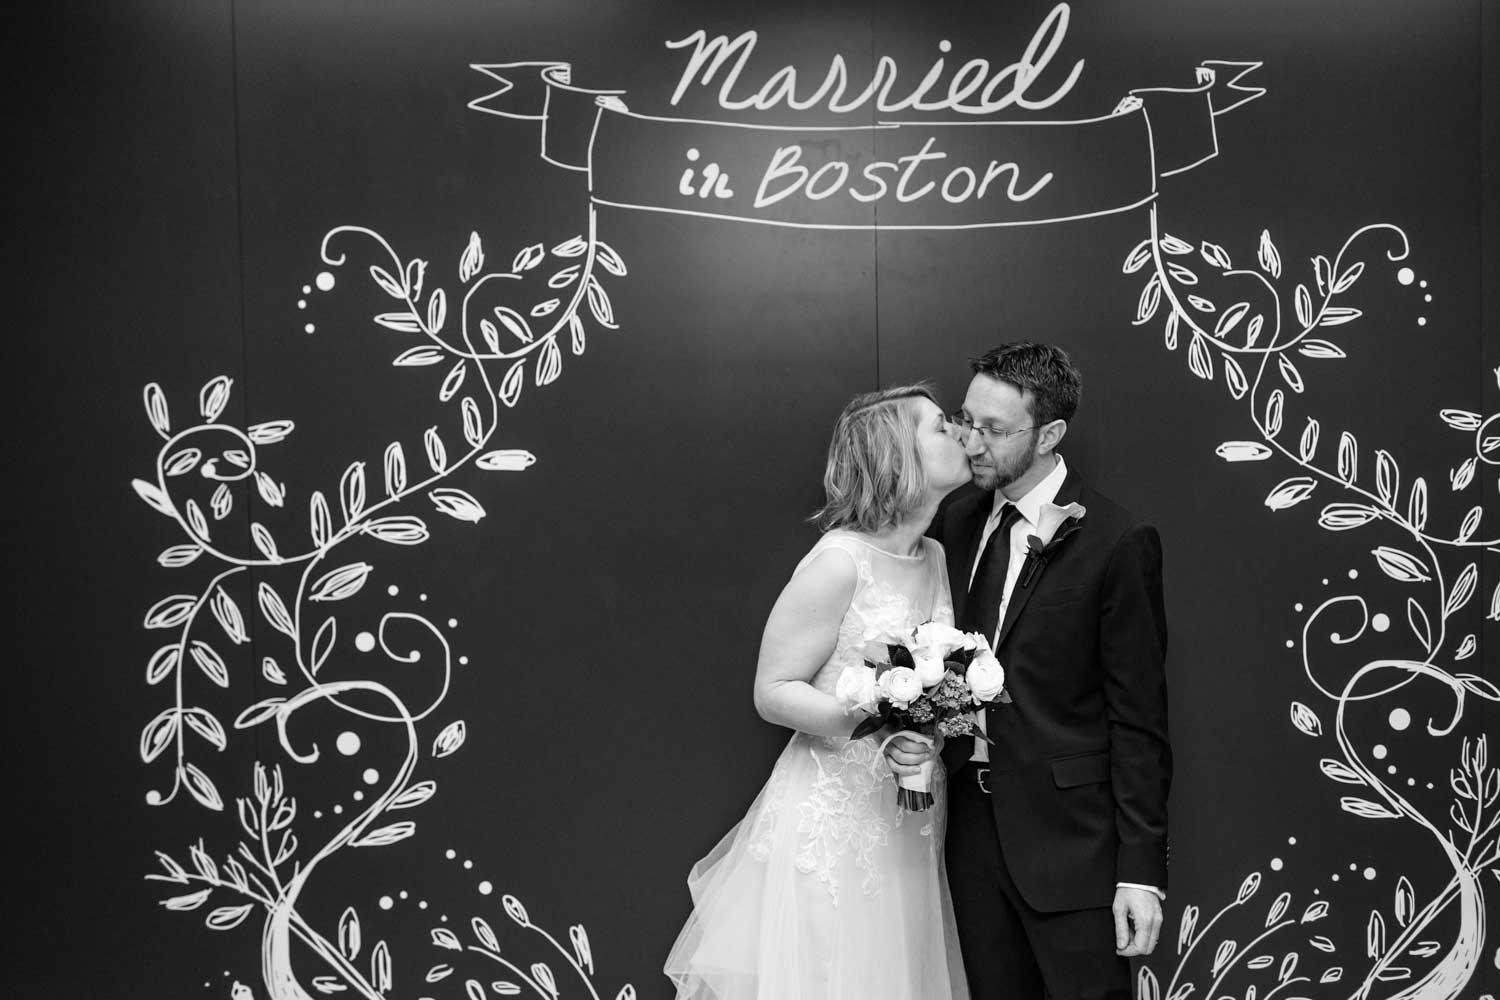 clerks office boston city hall elopement wedding photos